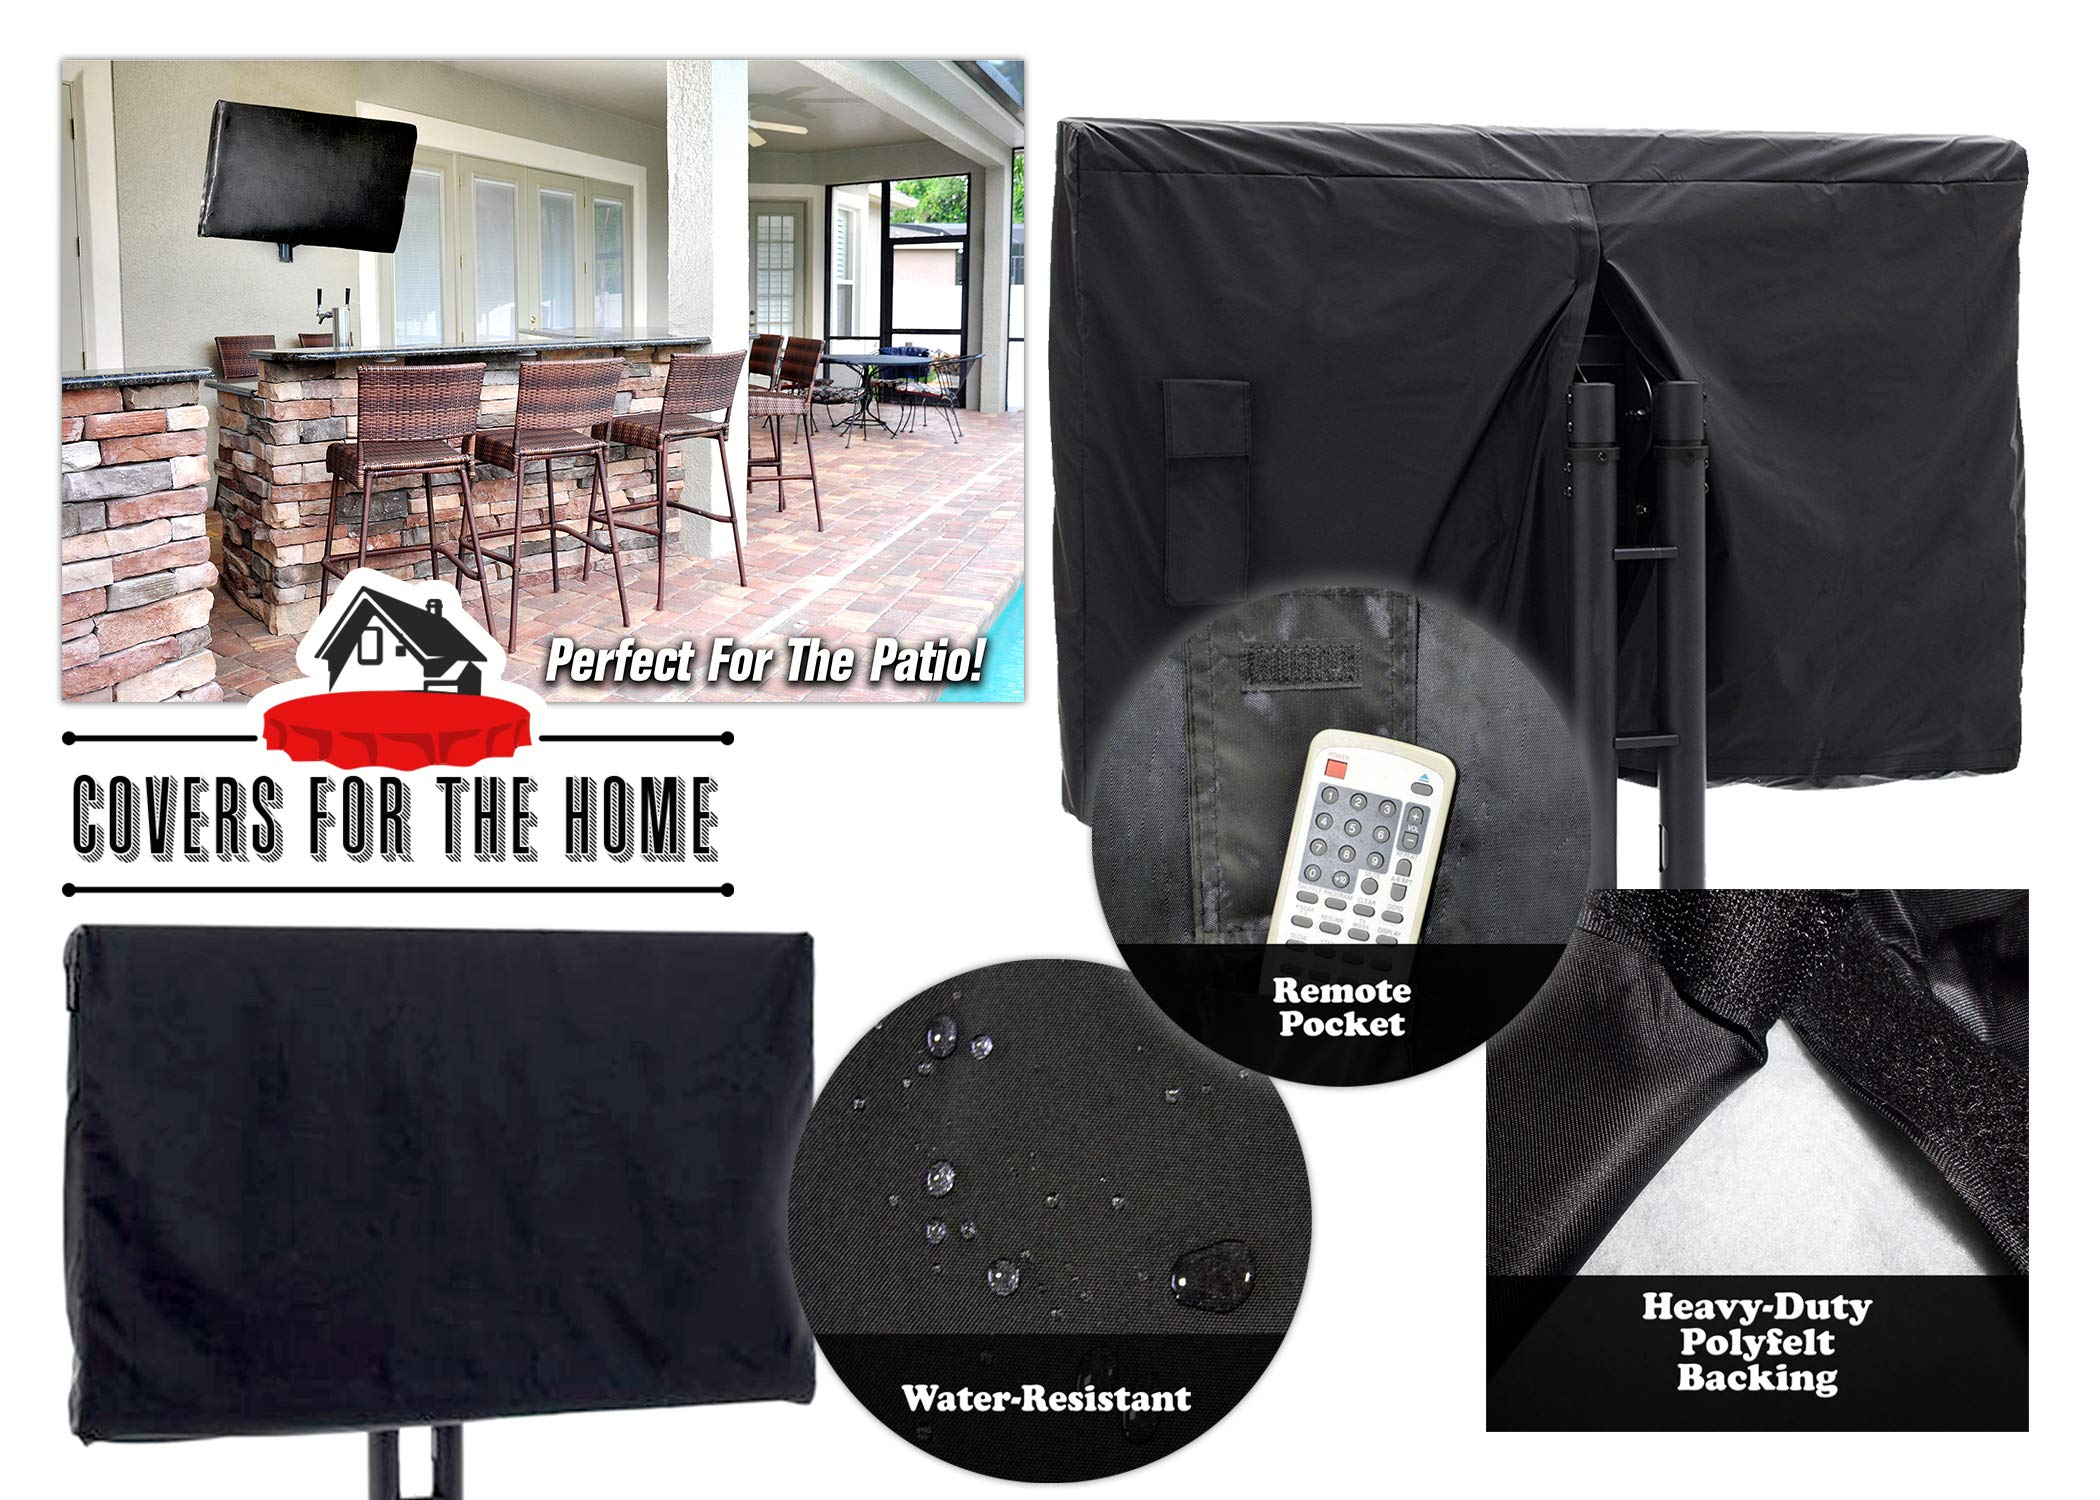 Premium Grade Indoor/Outdoor TV Cover - Fits 30'' - 32'' LCD, LED, Plasma TVs - Full Surface Coverage - Warranty - Premium Cover Flat Screen TV's by Covers For The Home (Image #1)